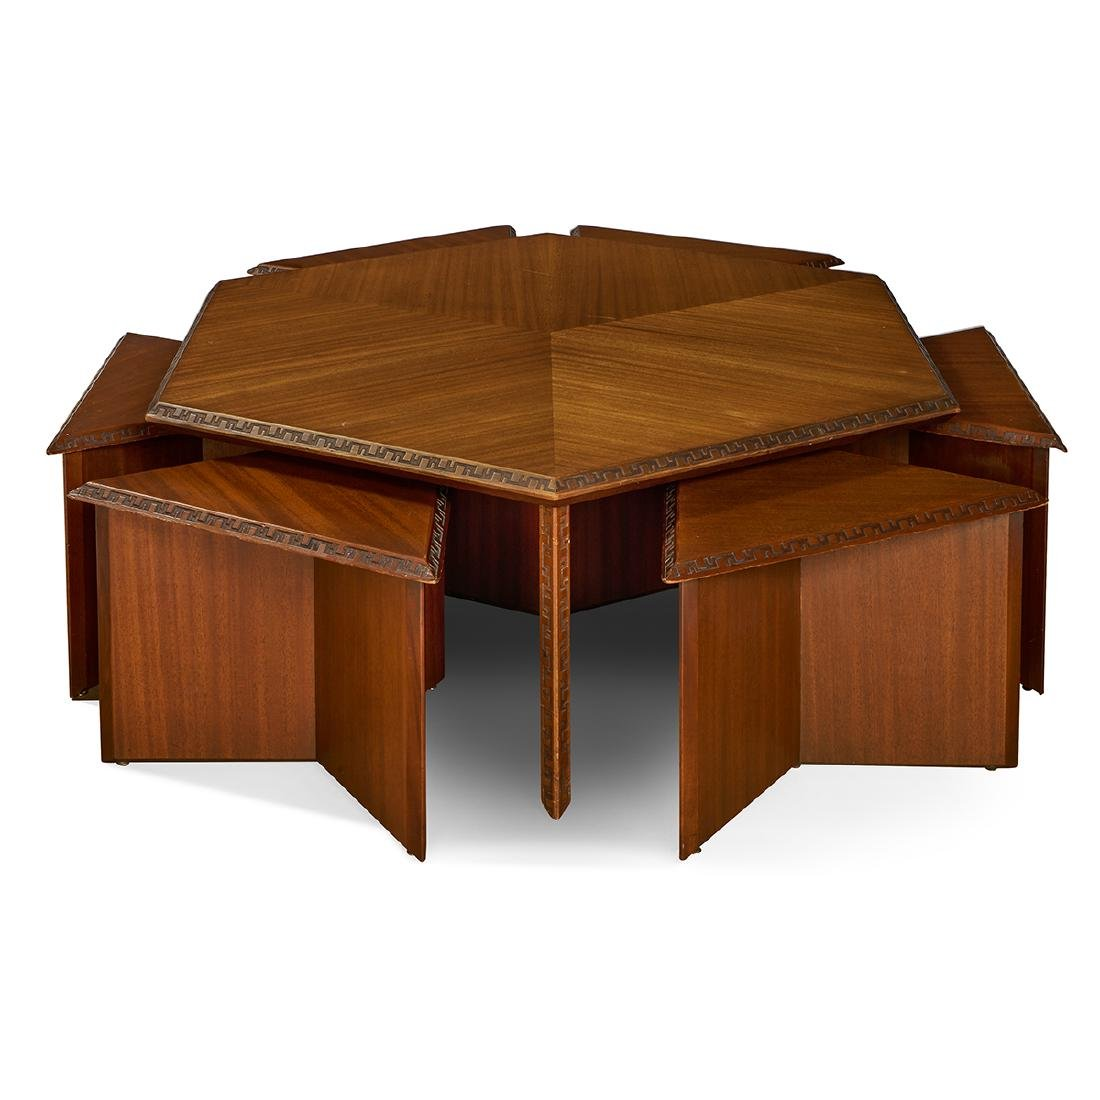 Coffee Table With Stools.Frank Lloyd Wright Henredon Coffee Table Stools